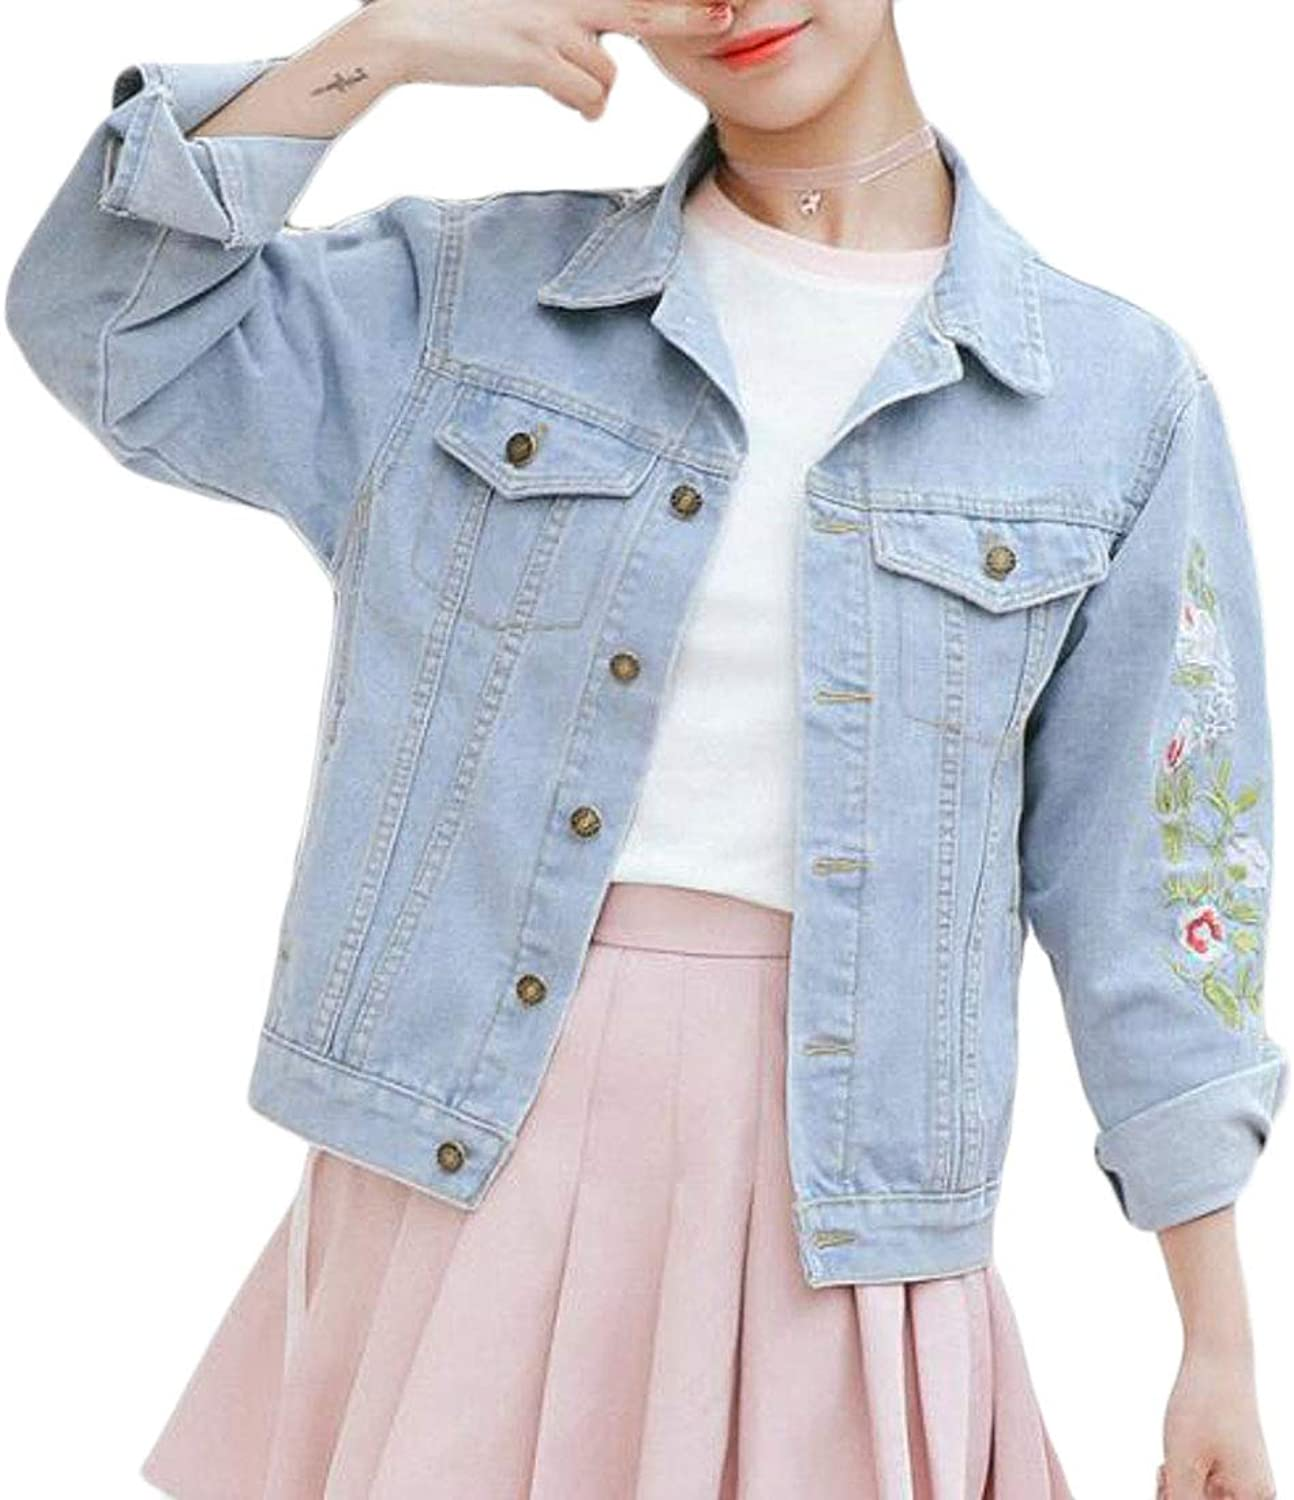 Cromoncent Women Embroideried Loose Fit Boyfriend Fall Casual Denim Jackets